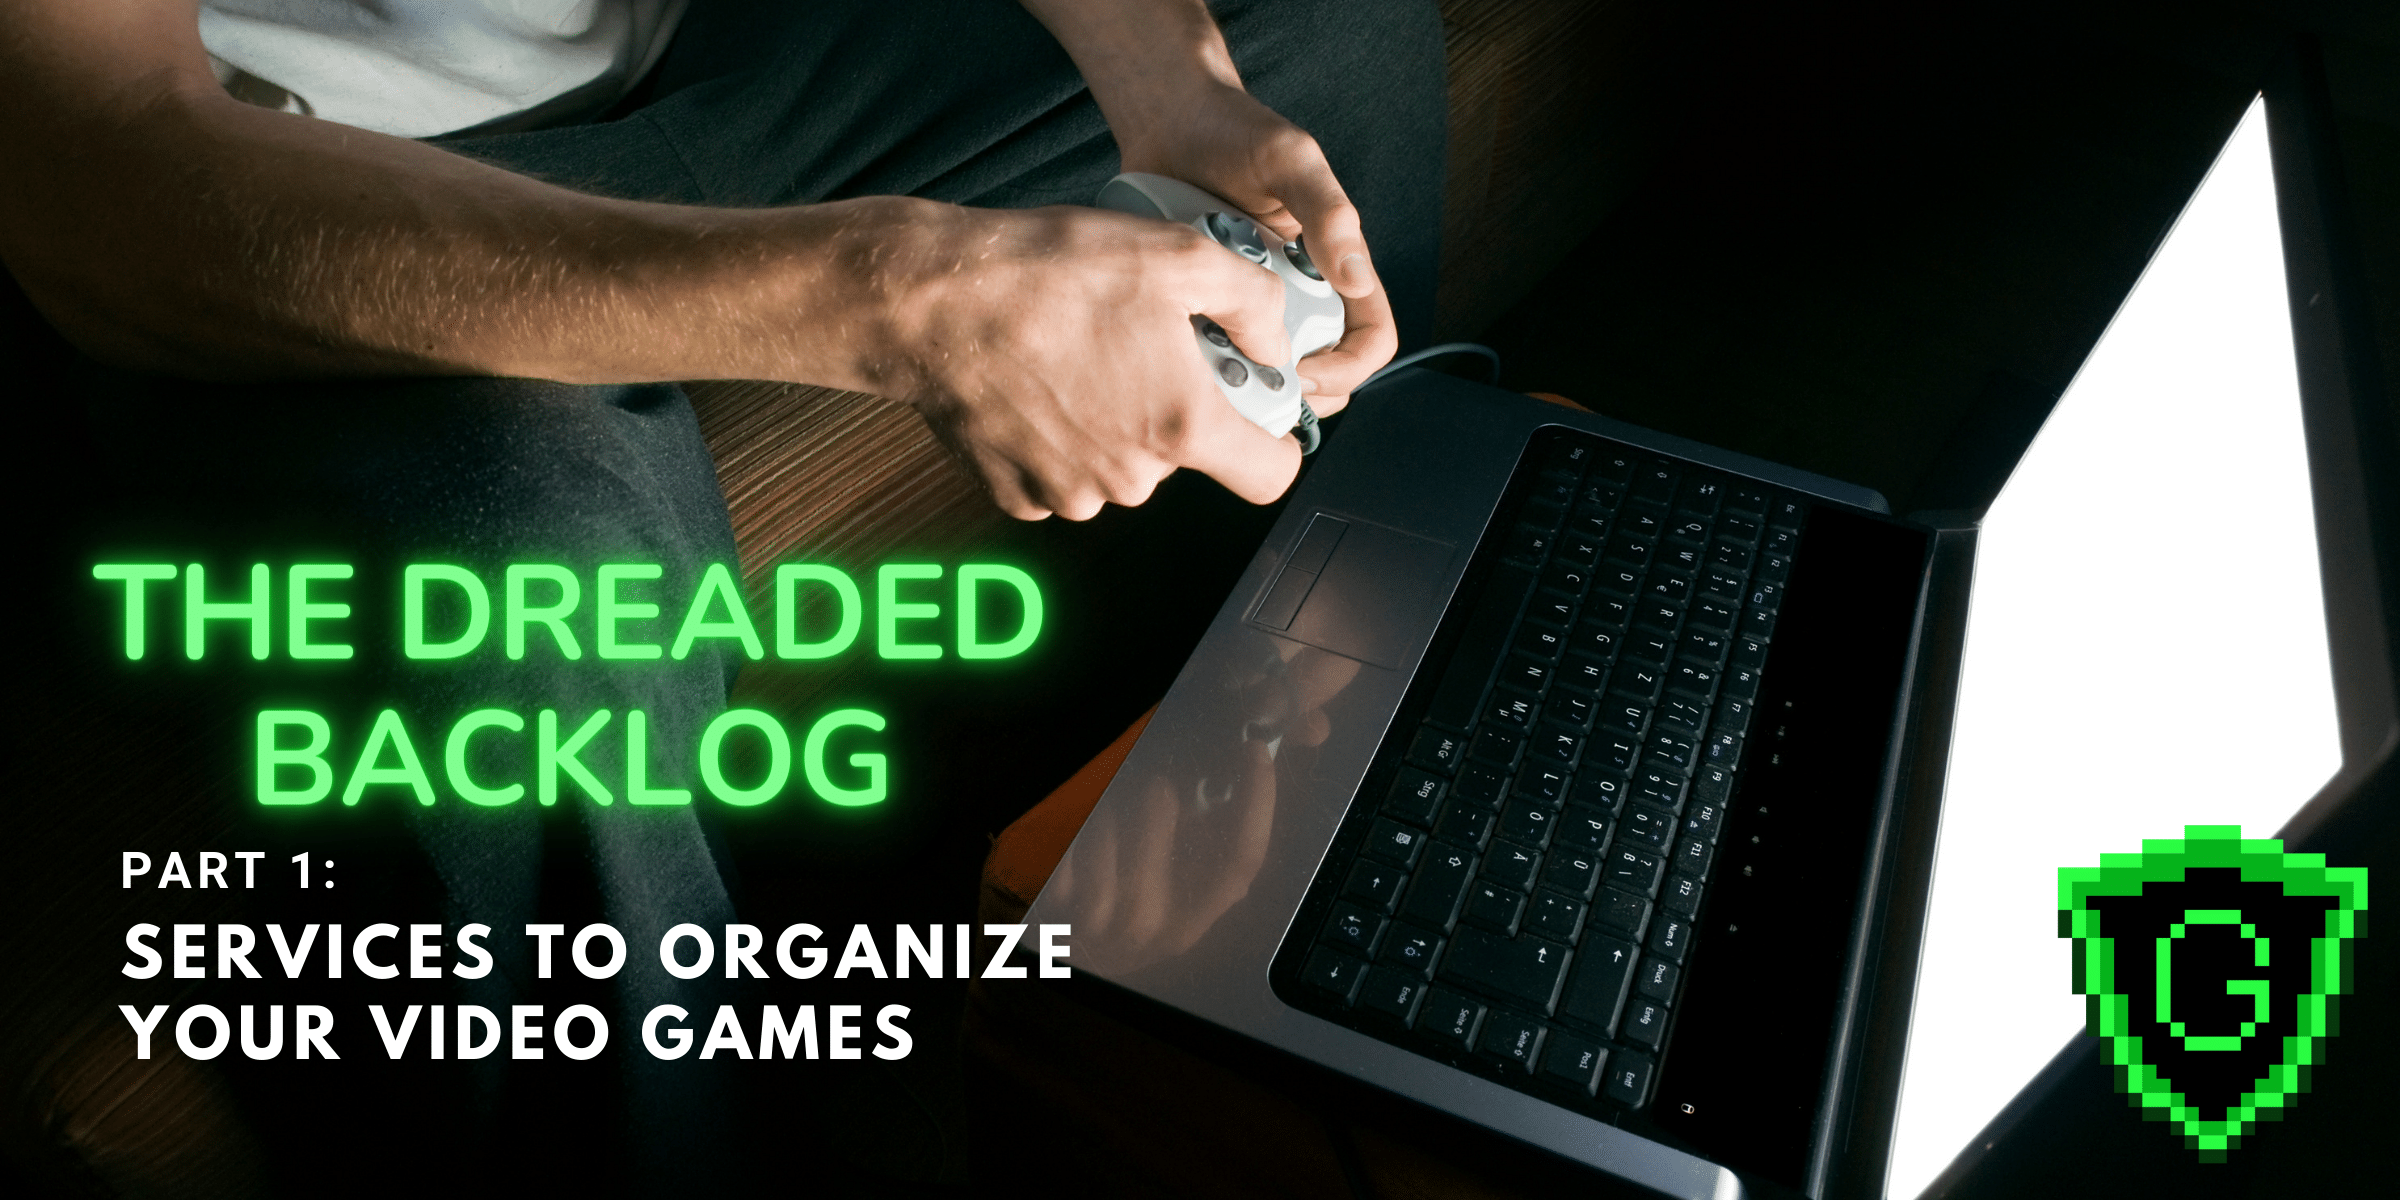 The Dreaded Backlog, Part 1: Services to Organize Your Video Games